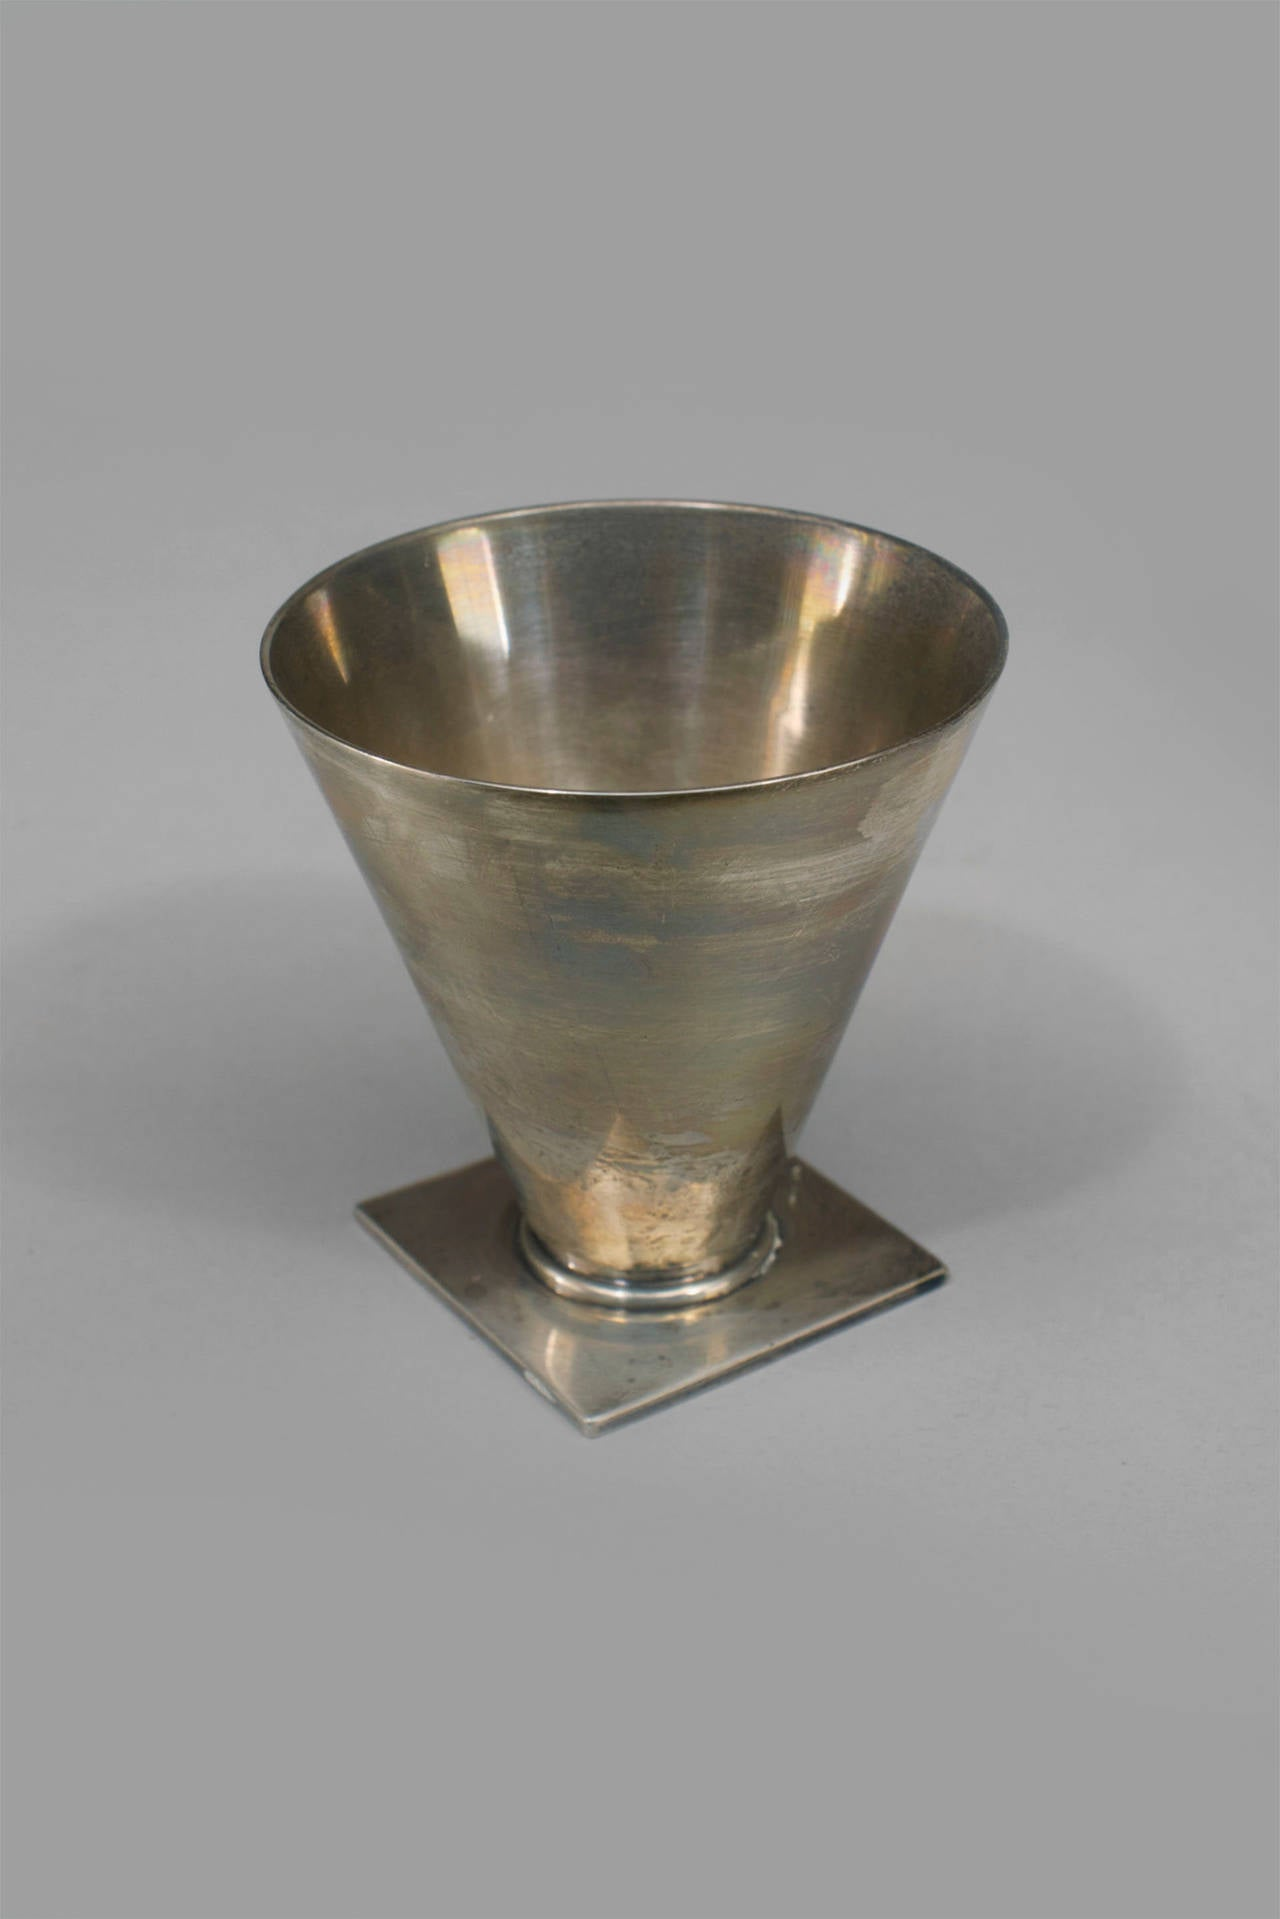 Set of 6 American Art Deco sterling silver small tapered cone shaped cordial cups resting on a square base, stamped Tiffany & Co.